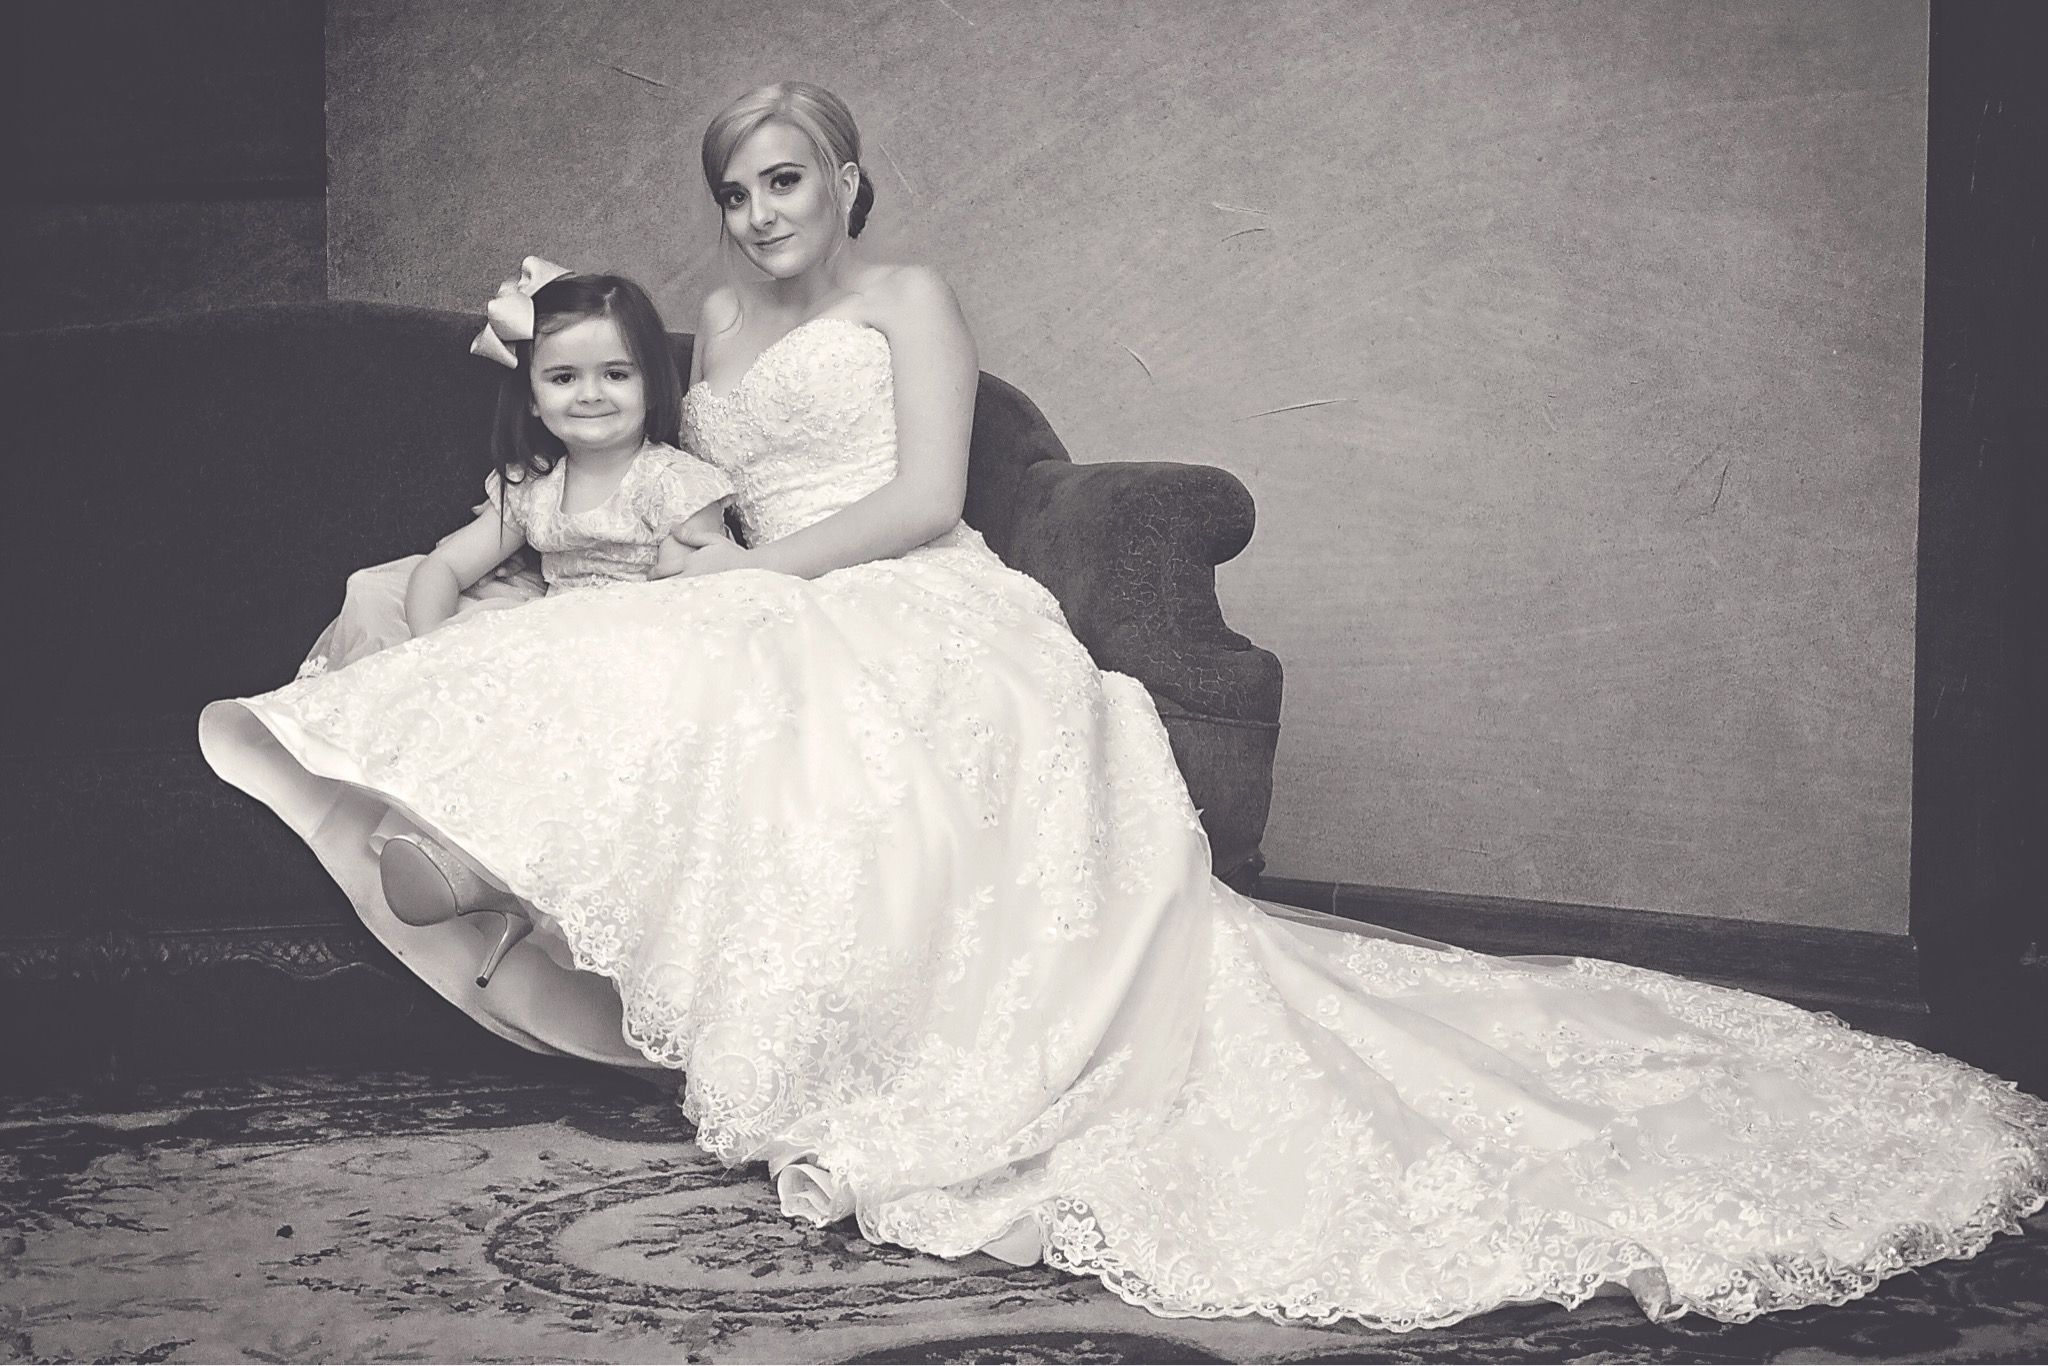 Real H Noelle Bride Carly Photography Tia Richards Photography Hnoellebridal Hnoellebride Wedding Bride Brideto Wedding Dresses Bridal Boutique Bridal,Where To Buy Anna Campbell Wedding Dresses